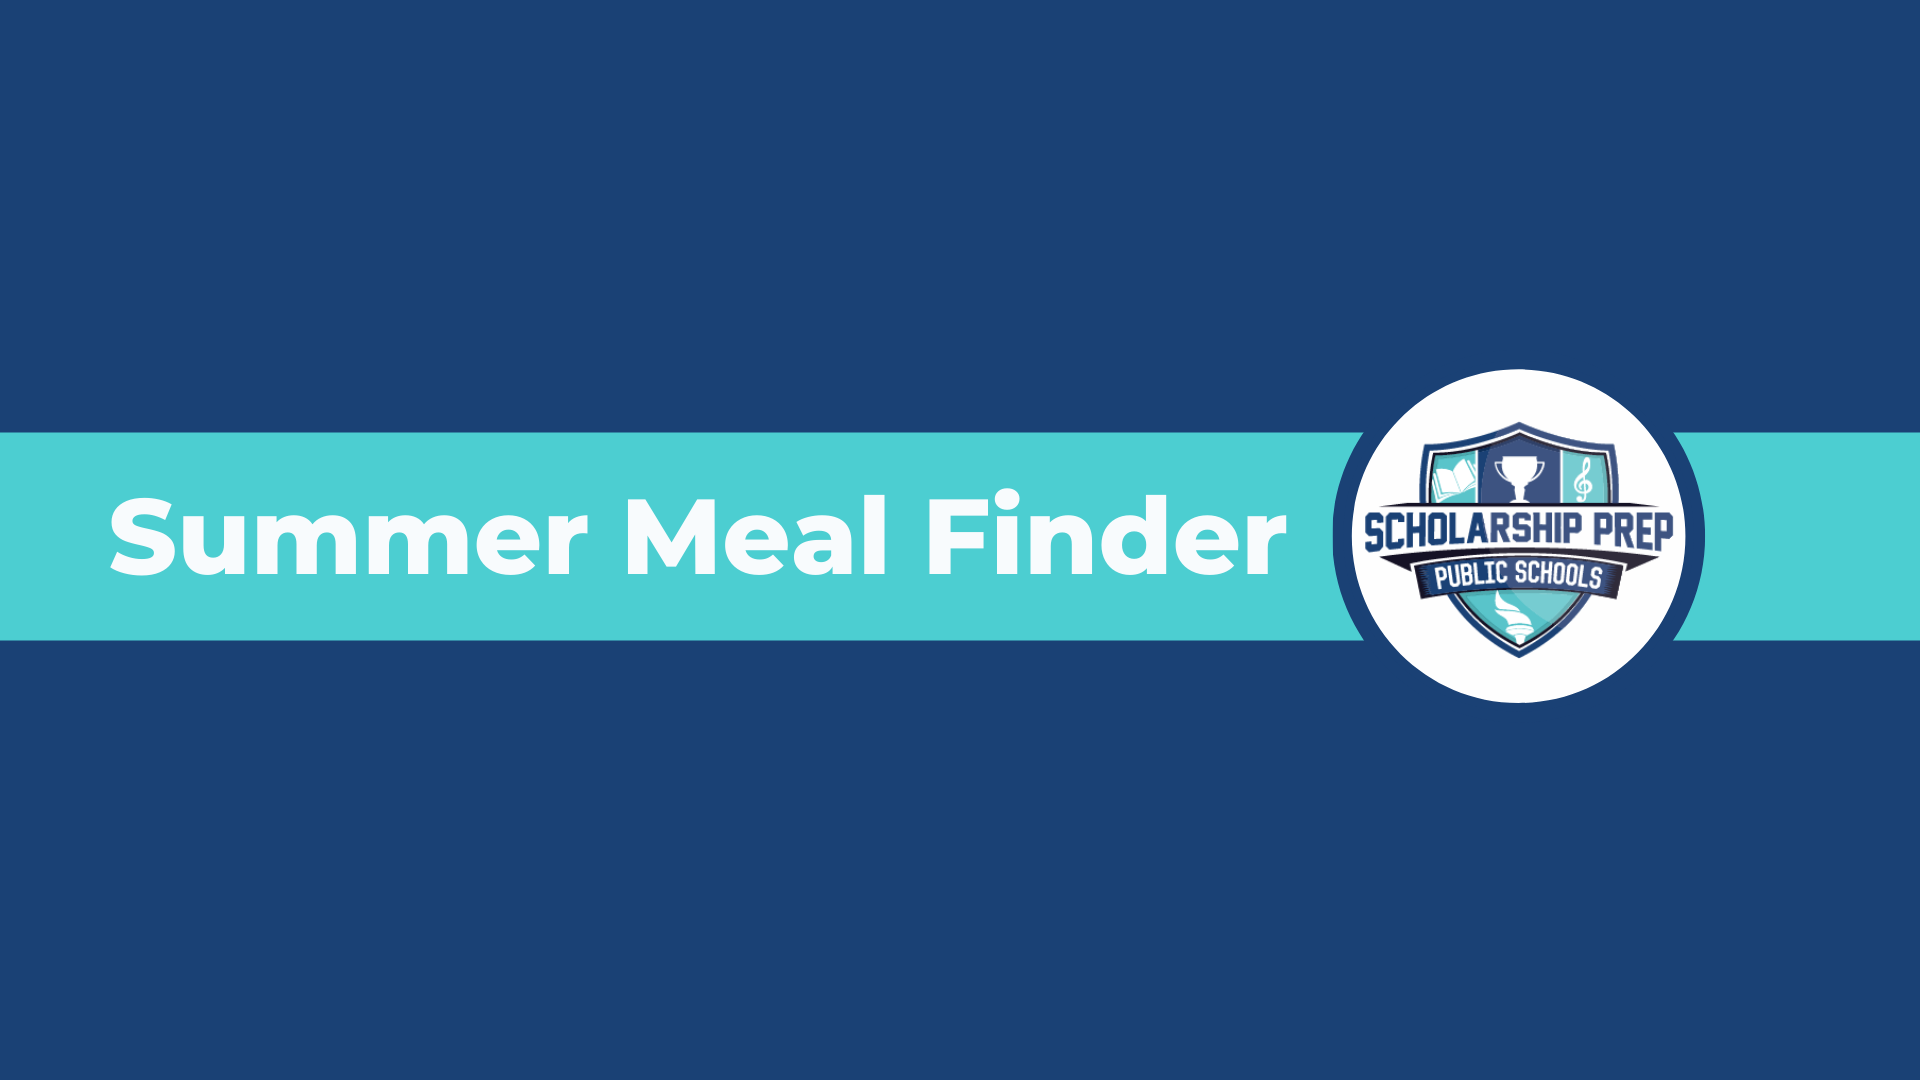 Summer Meal Finder Information